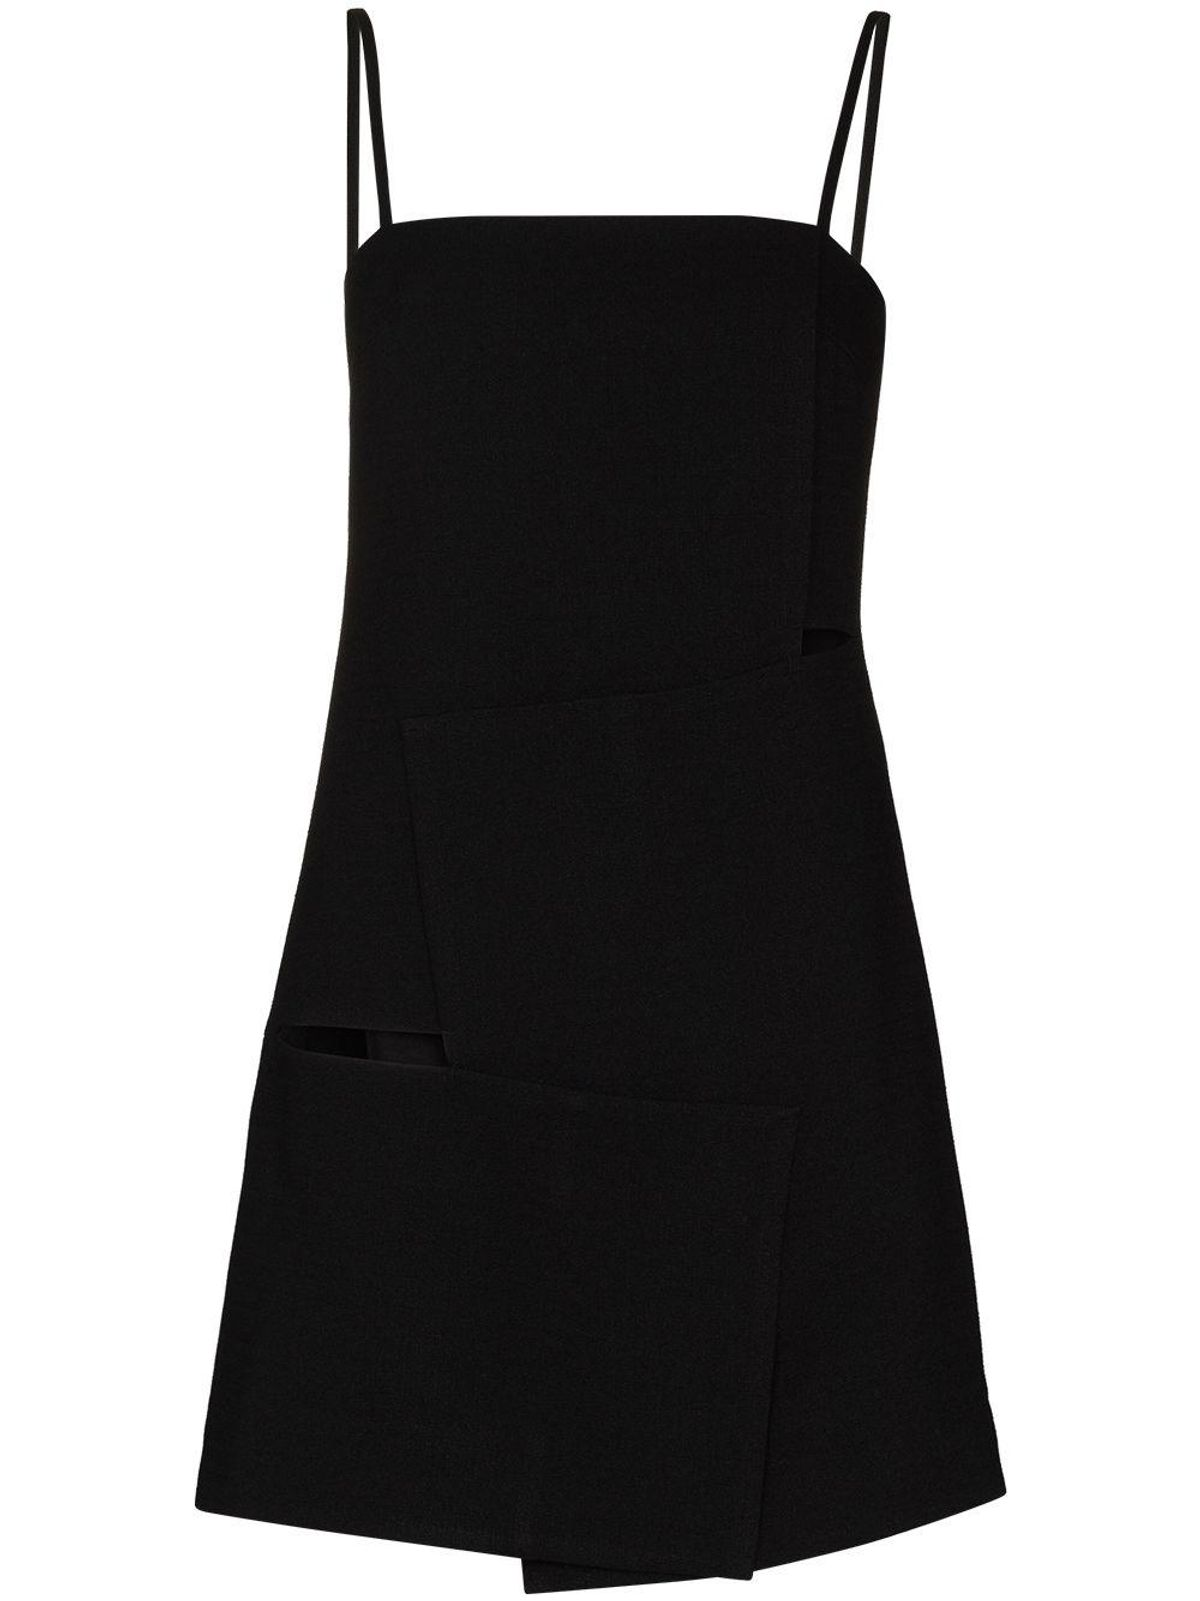 Overlap Long Camisole Top